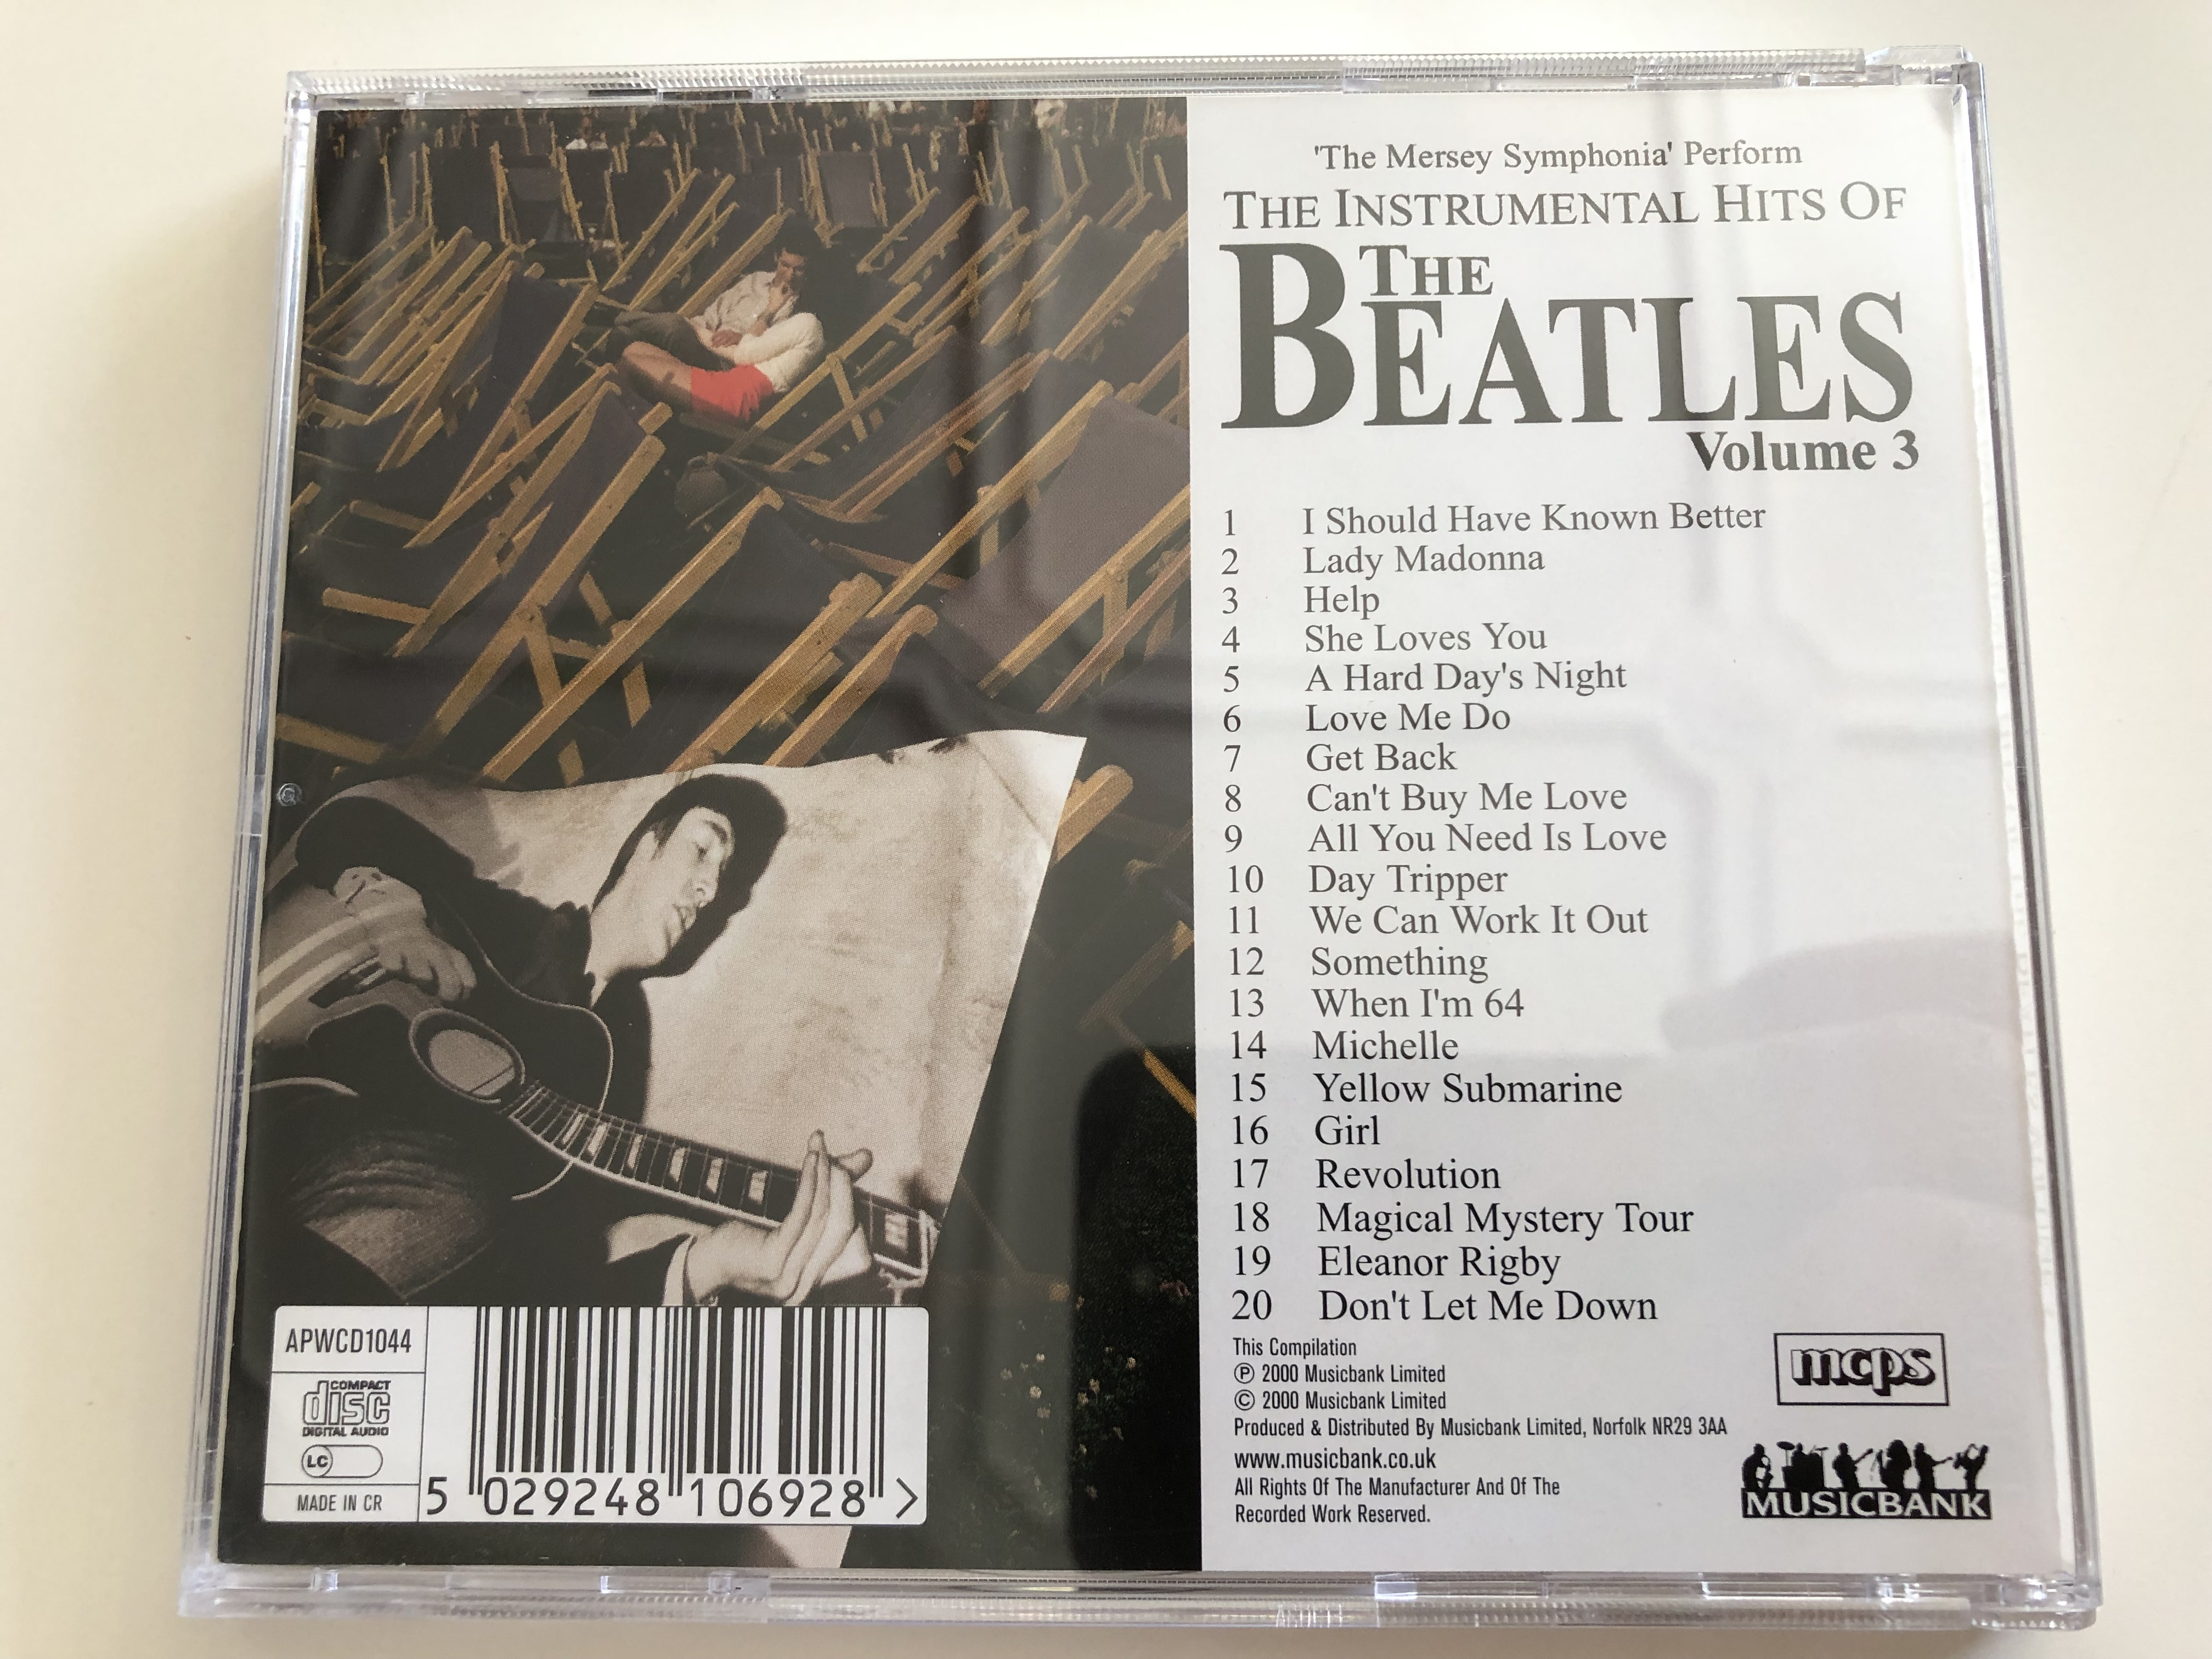 the-instrumental-hits-of-the-beatles-vol.-3-mersey-symphonia-20-beautifully-arranged-instrumentals-lady-madonna-help-she-loves-you-audio-cd-2000-apwcd1044-musicbank-5-.jpg